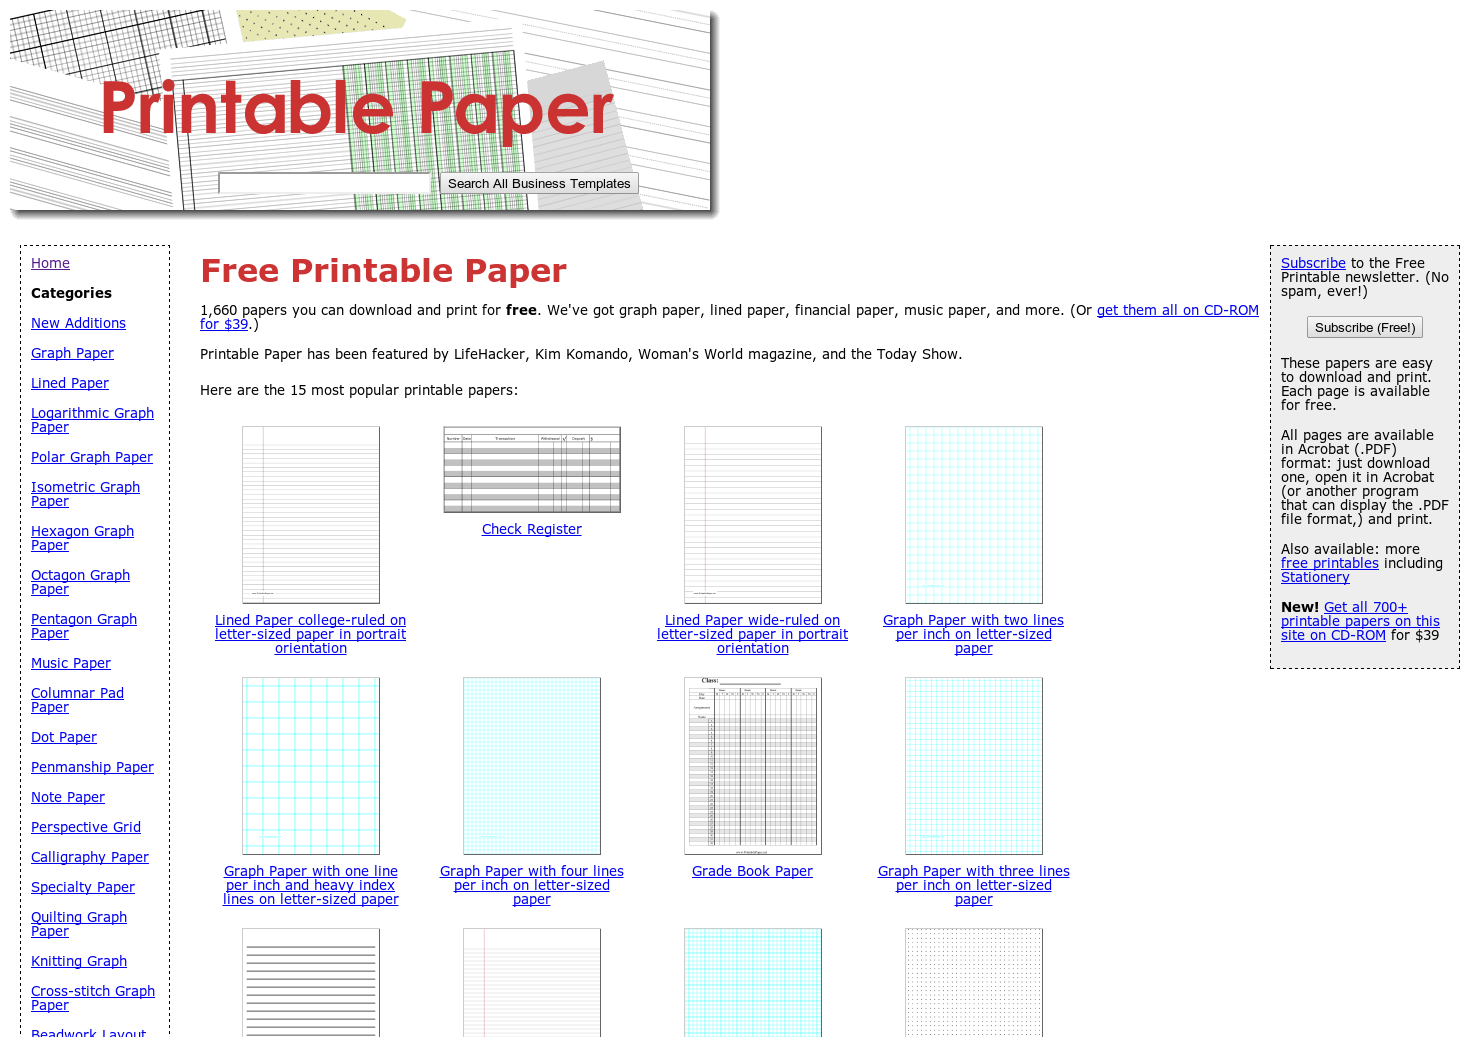 photograph relating to Www Printablepaper Net known as Printable Paper - Print Graph Paper, Faculty Dominated, or other